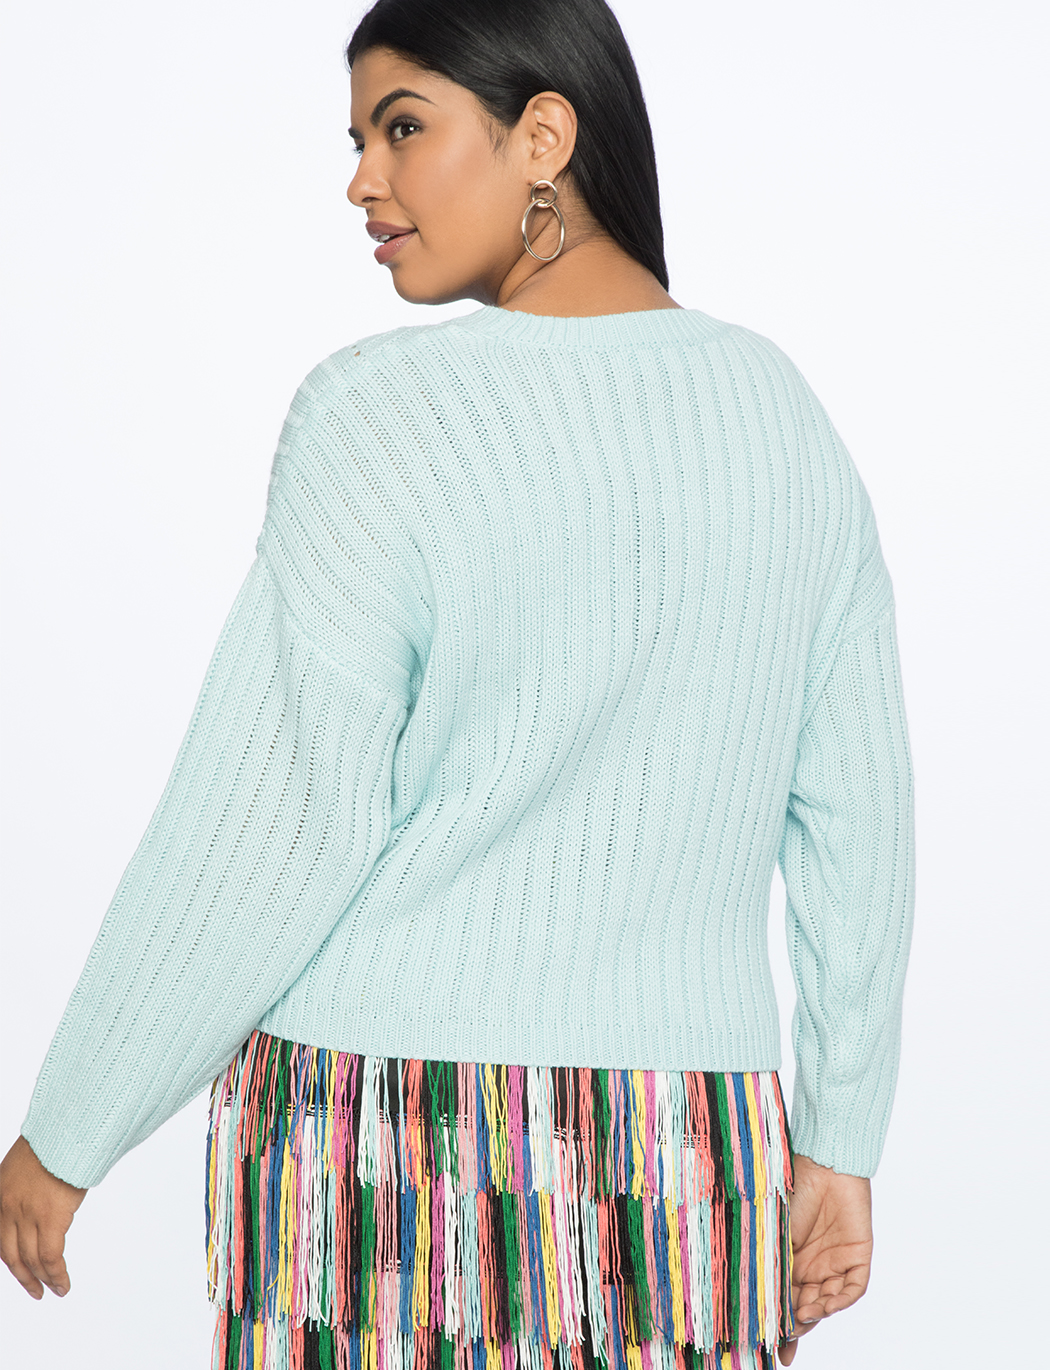 Stitching Detail Cropped Sweater